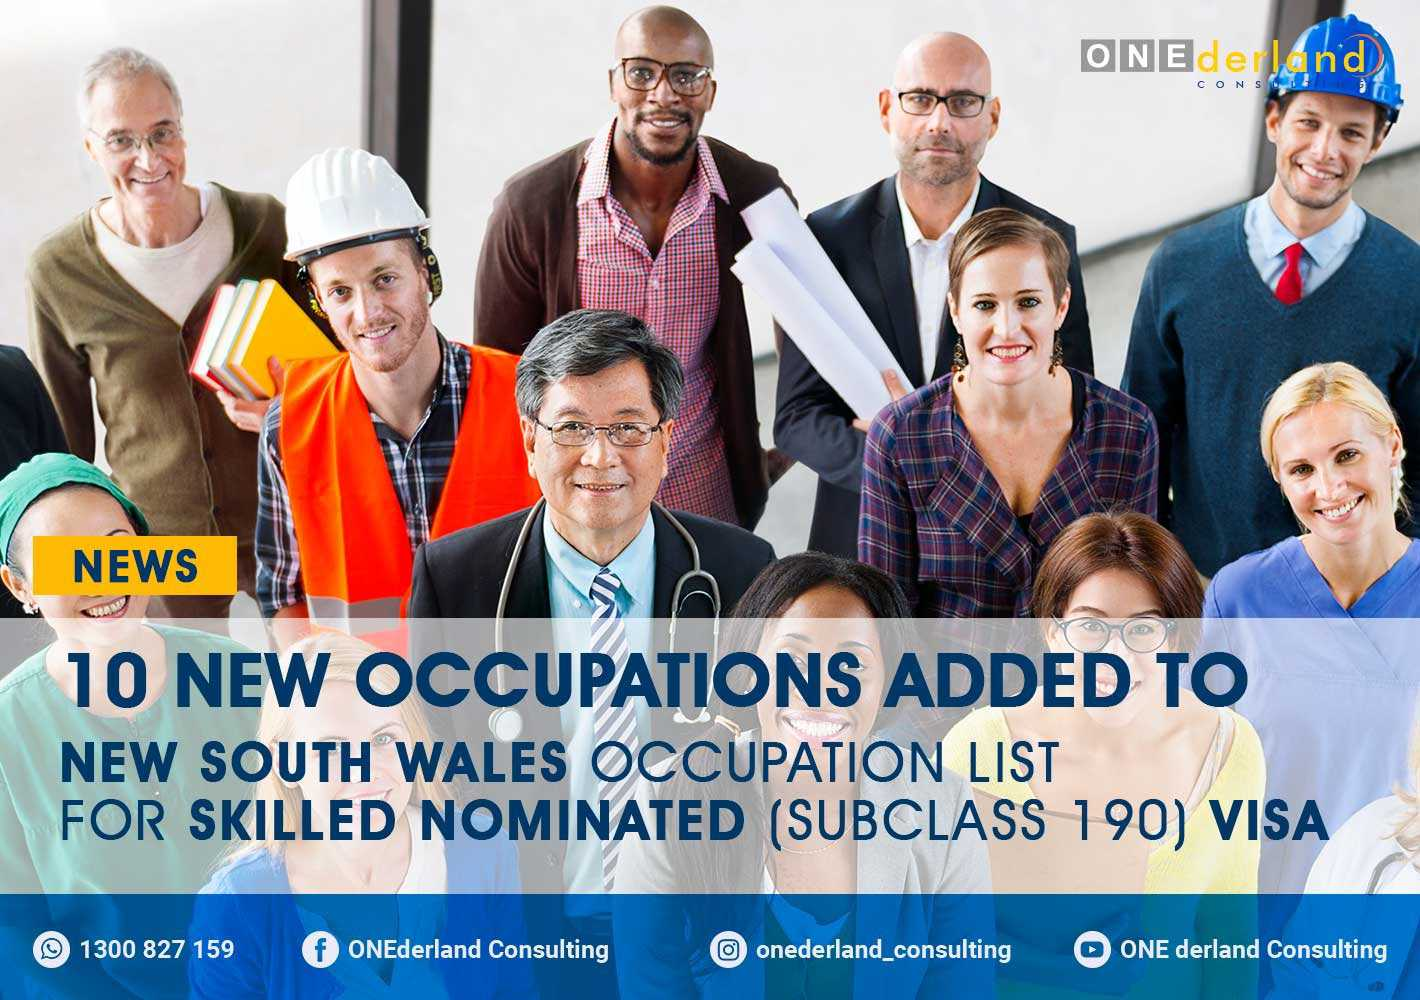 New Occupations Equal New Chance for Visa 190 Applicant!